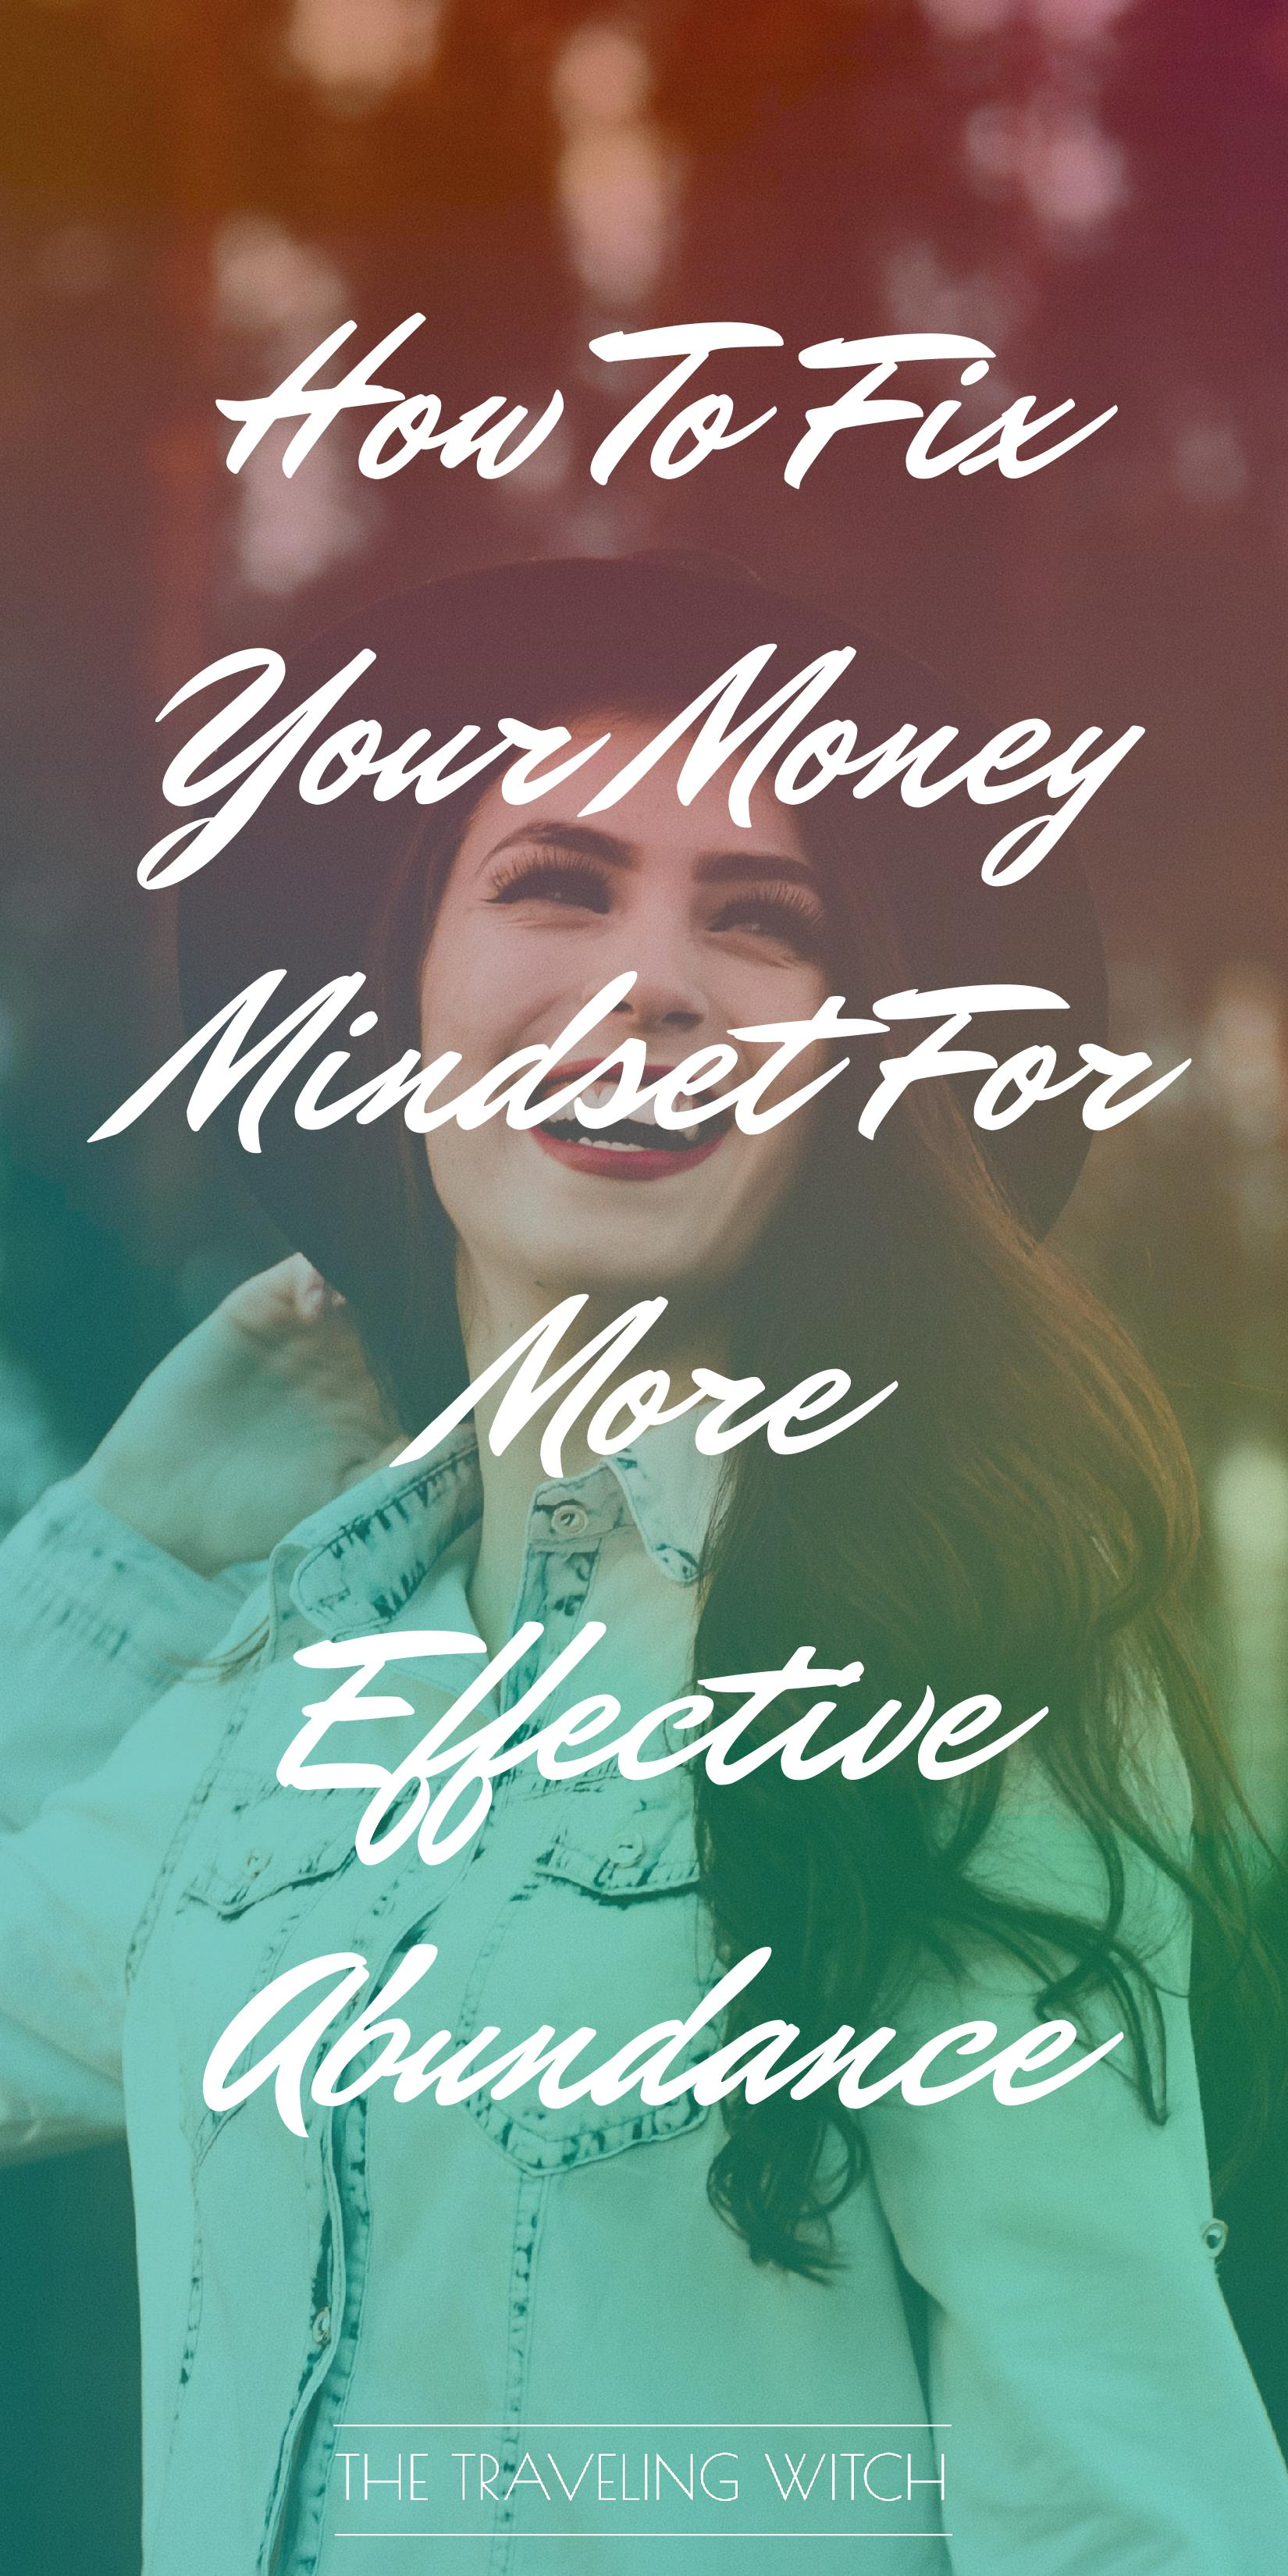 How To Fix Your Money Mindset For More Effective Abundance